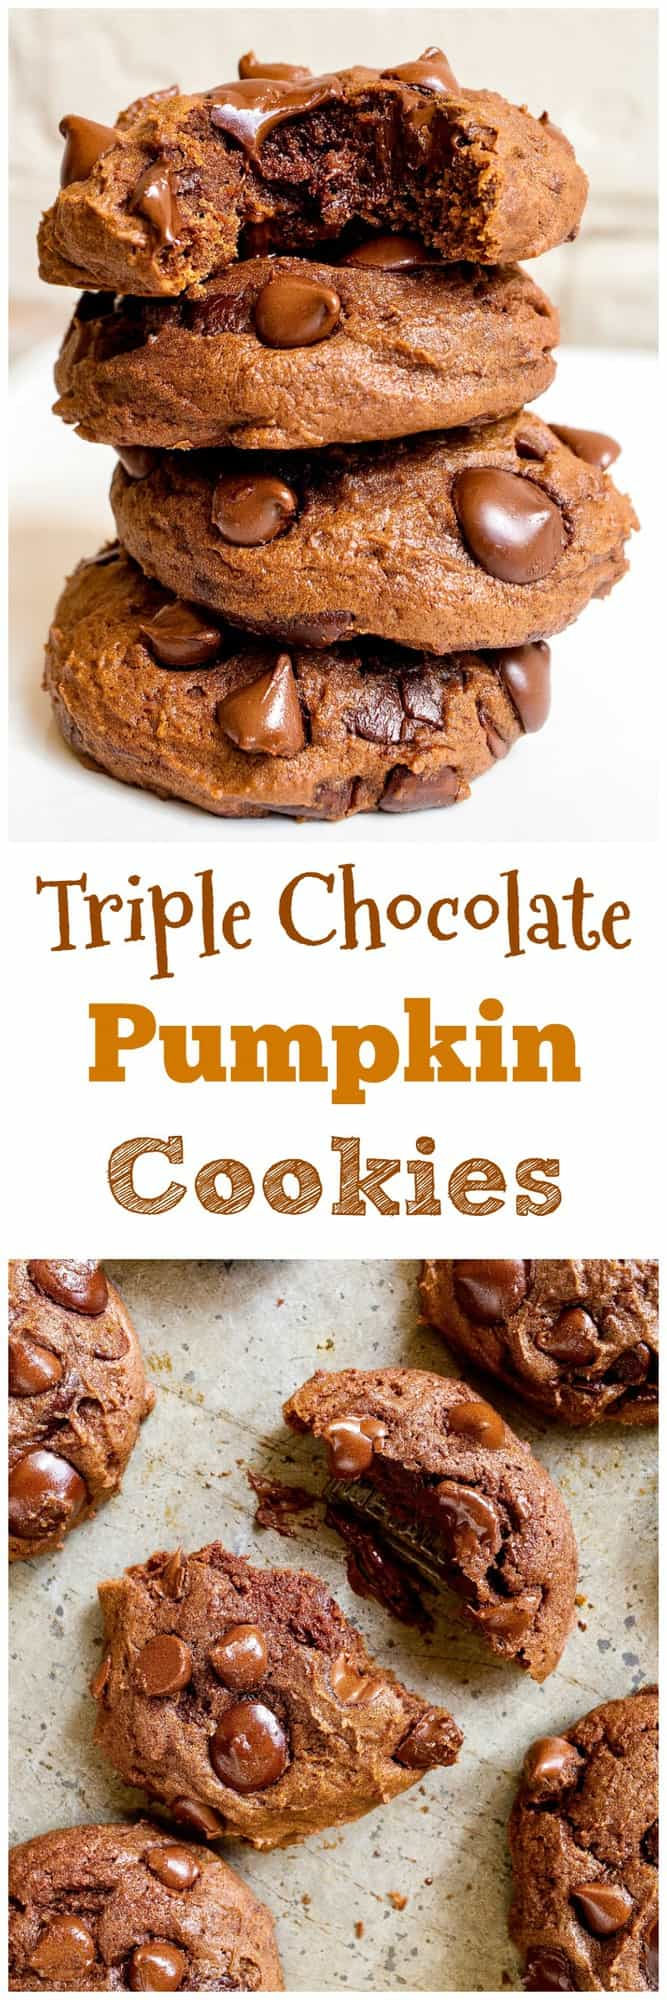 Triple Chocolate Pumpkin Cookies